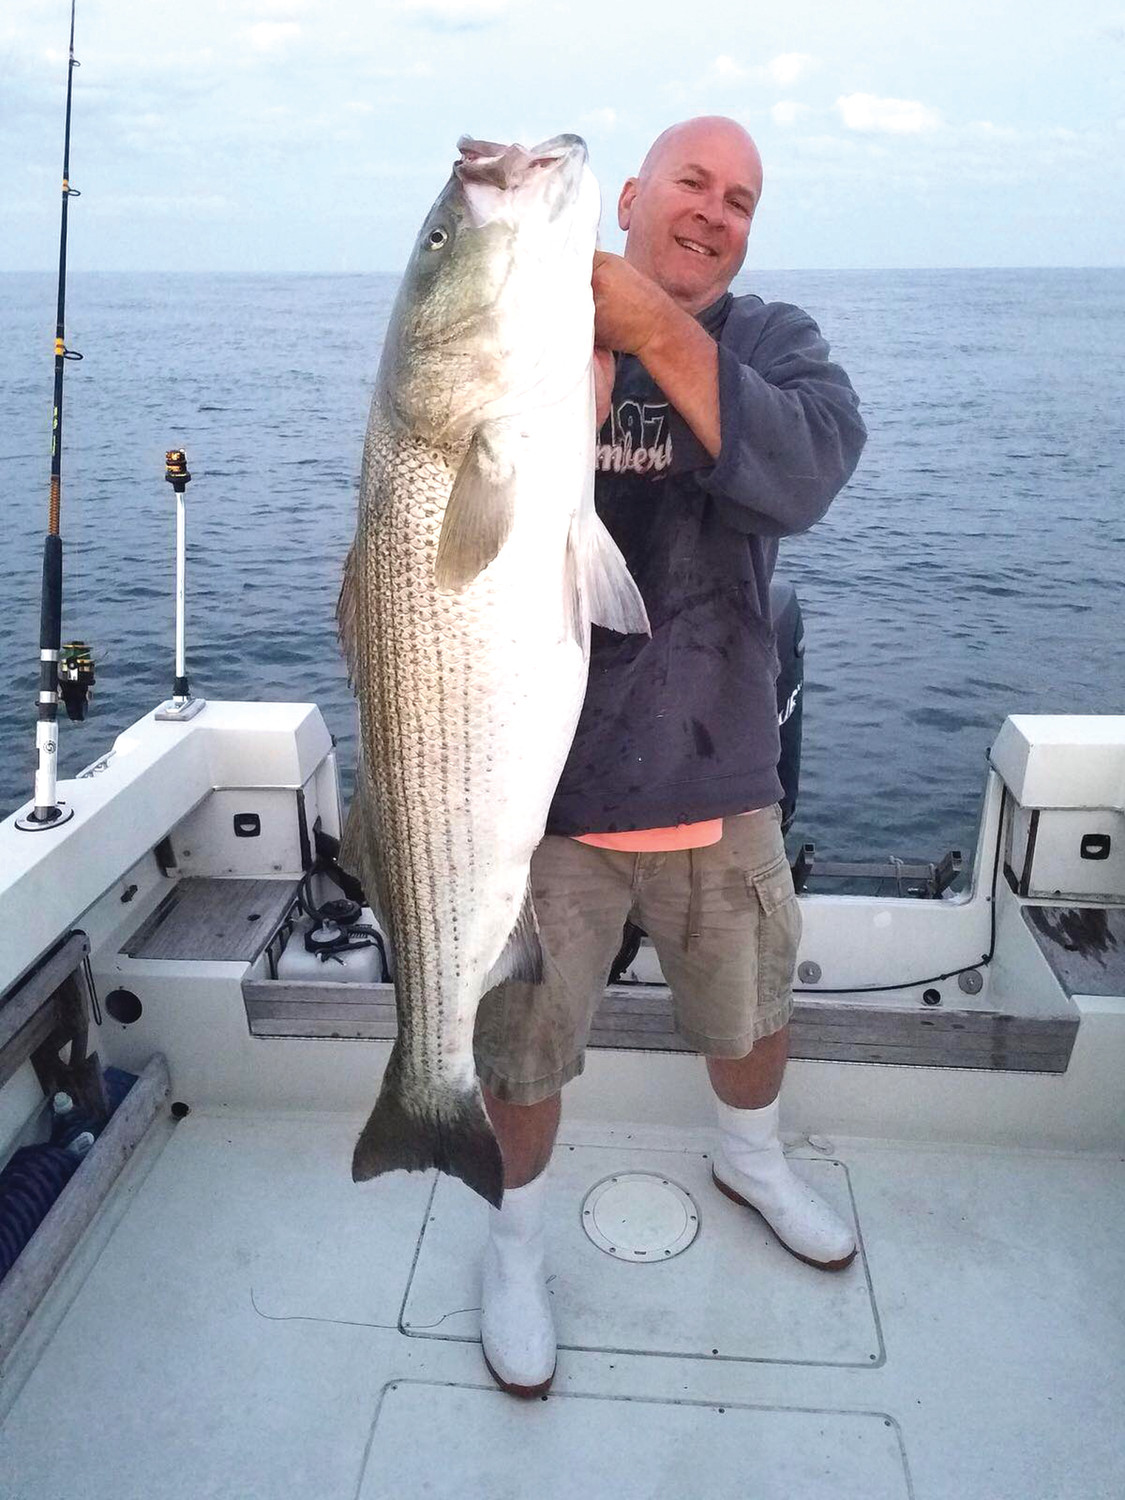 Dave Henault of Ocean State Tackle said customer Doug Marcotte (shown in photo) caught this 53 pound striped bass at Block Island using live eels earlier this week.